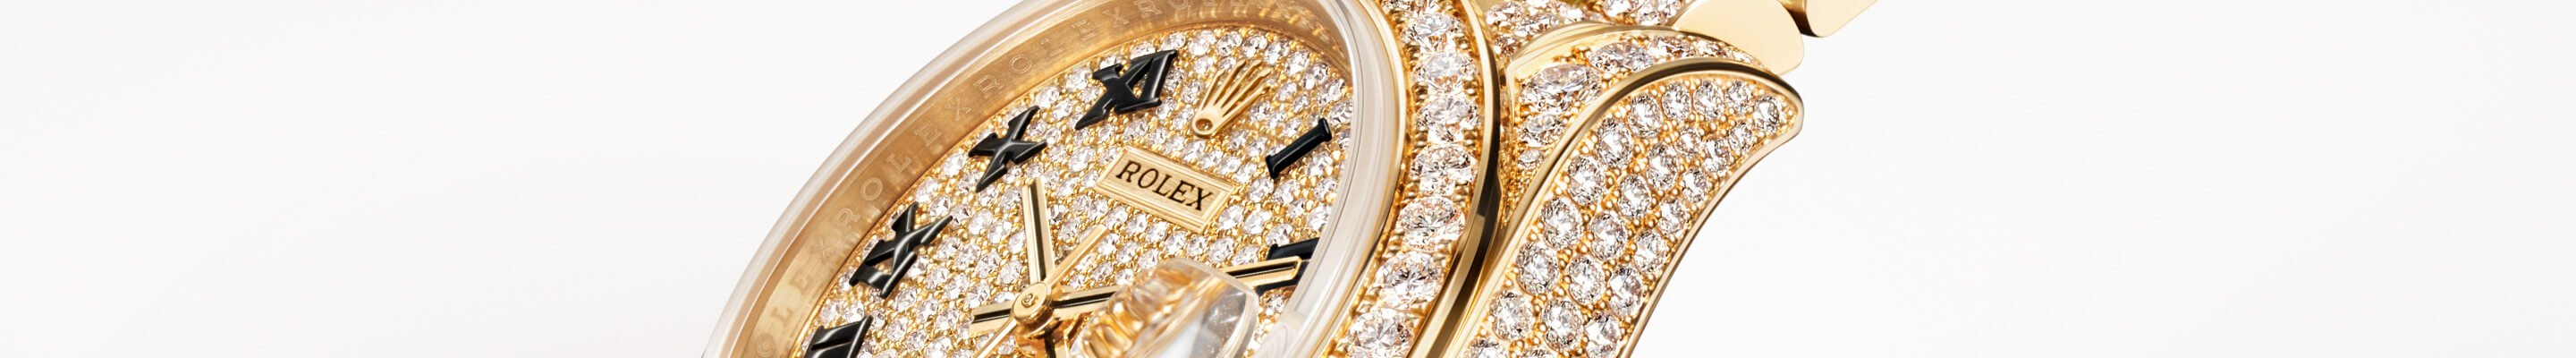 Our Rolex Lady-Datejust Watches